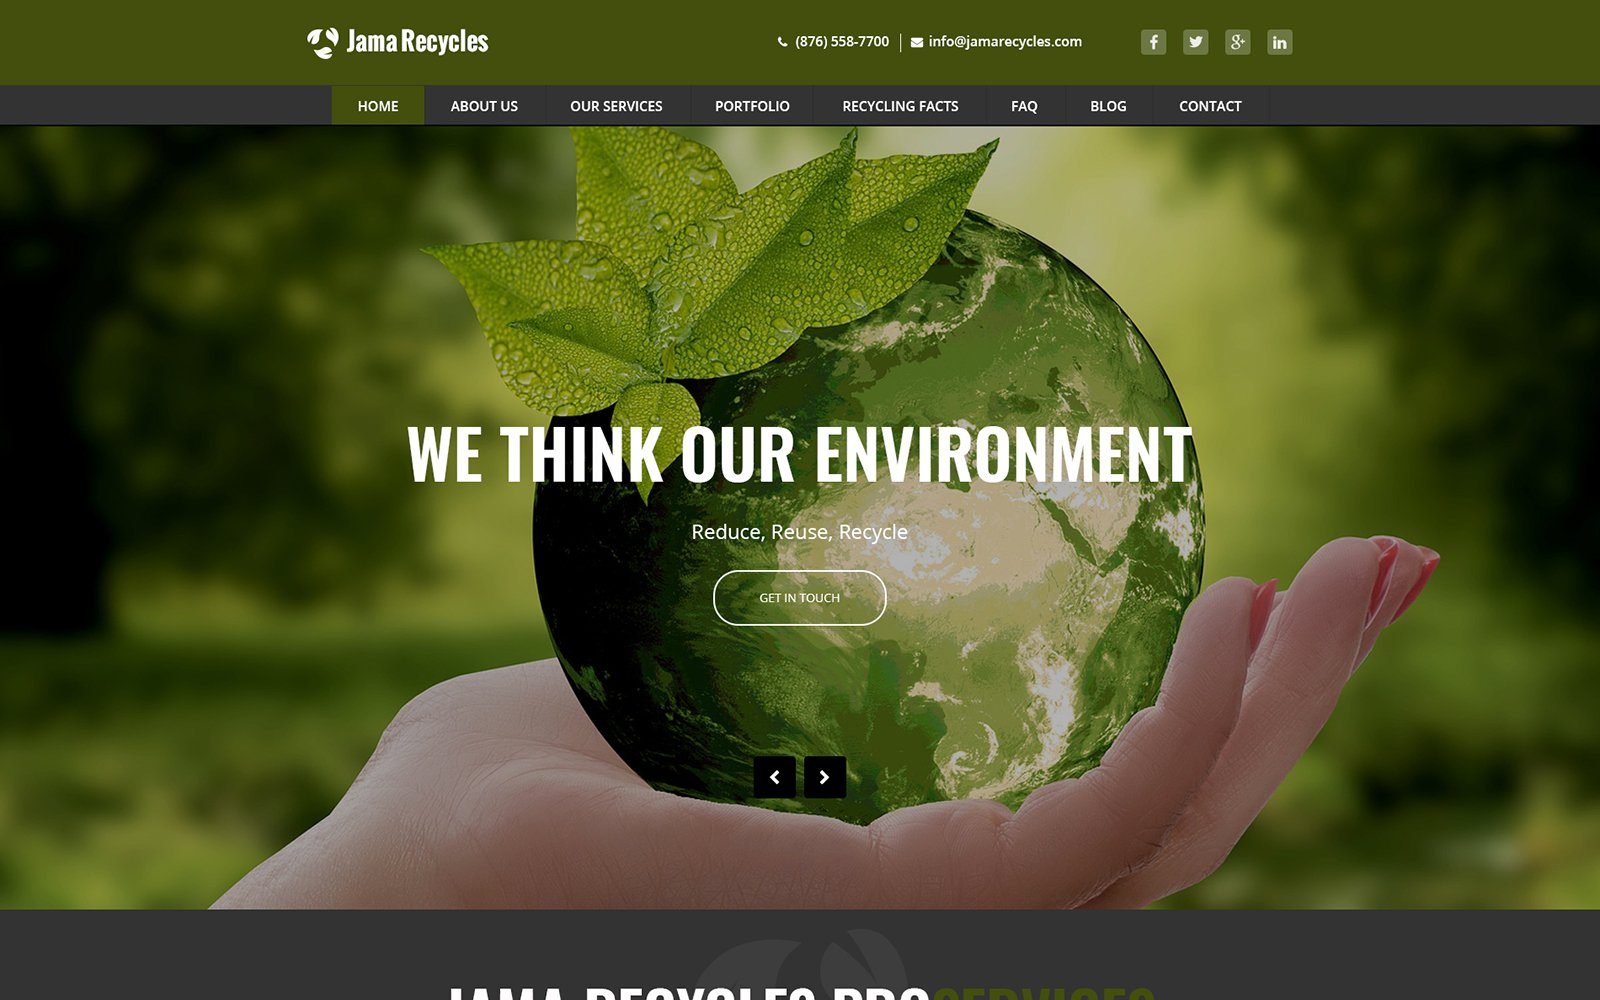 Jama Recycles - Waste Management and Recycling PSD Template